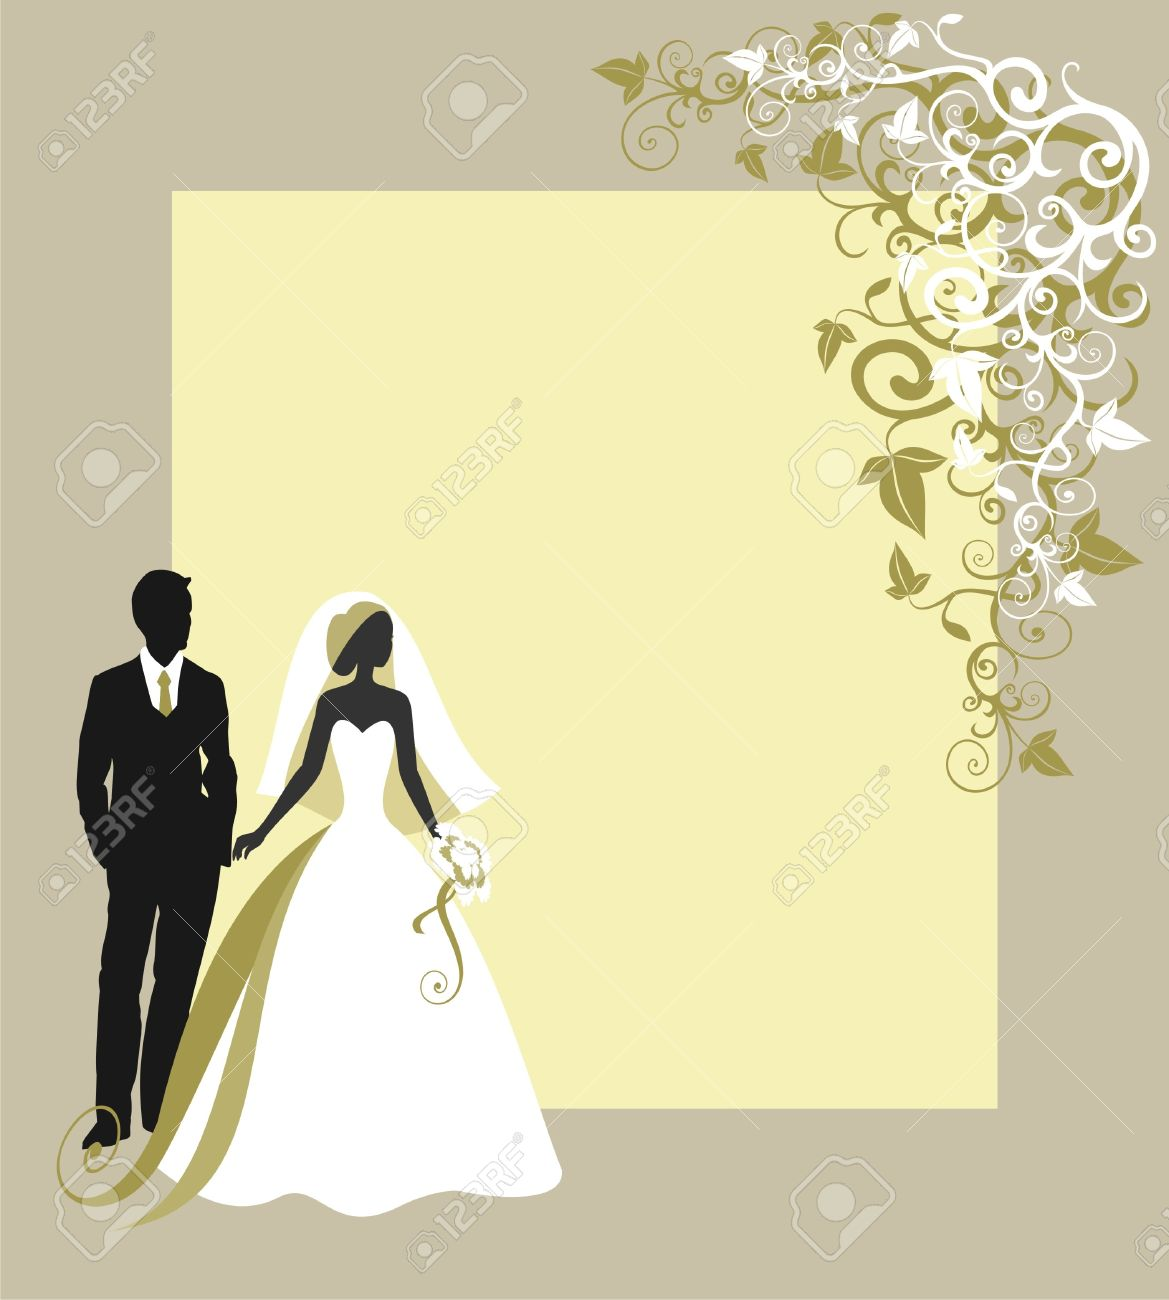 Invitation cards with the bride in a veil - 14977467